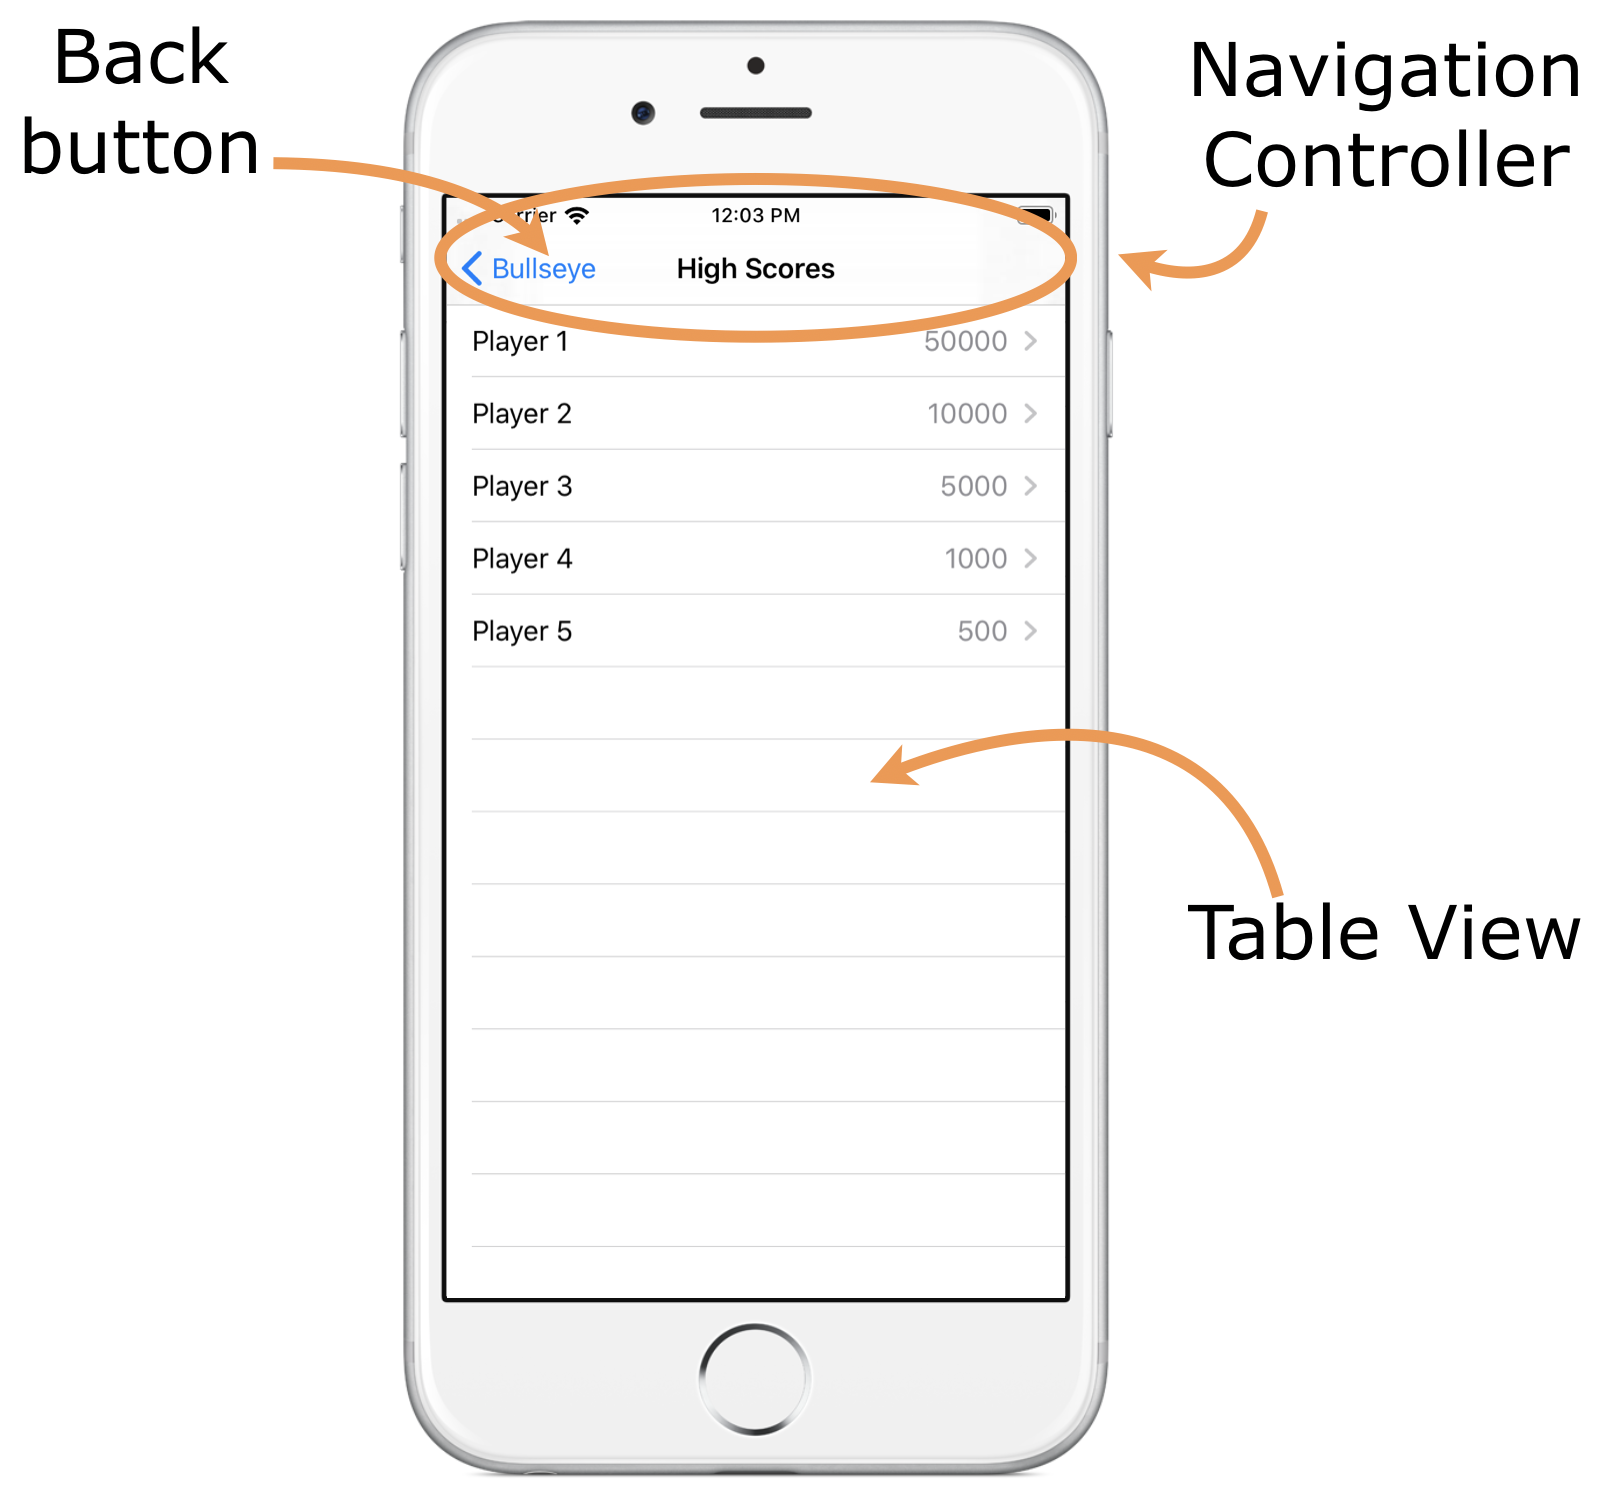 The grey bar at the top is the navigation bar. The list of items is the table view.